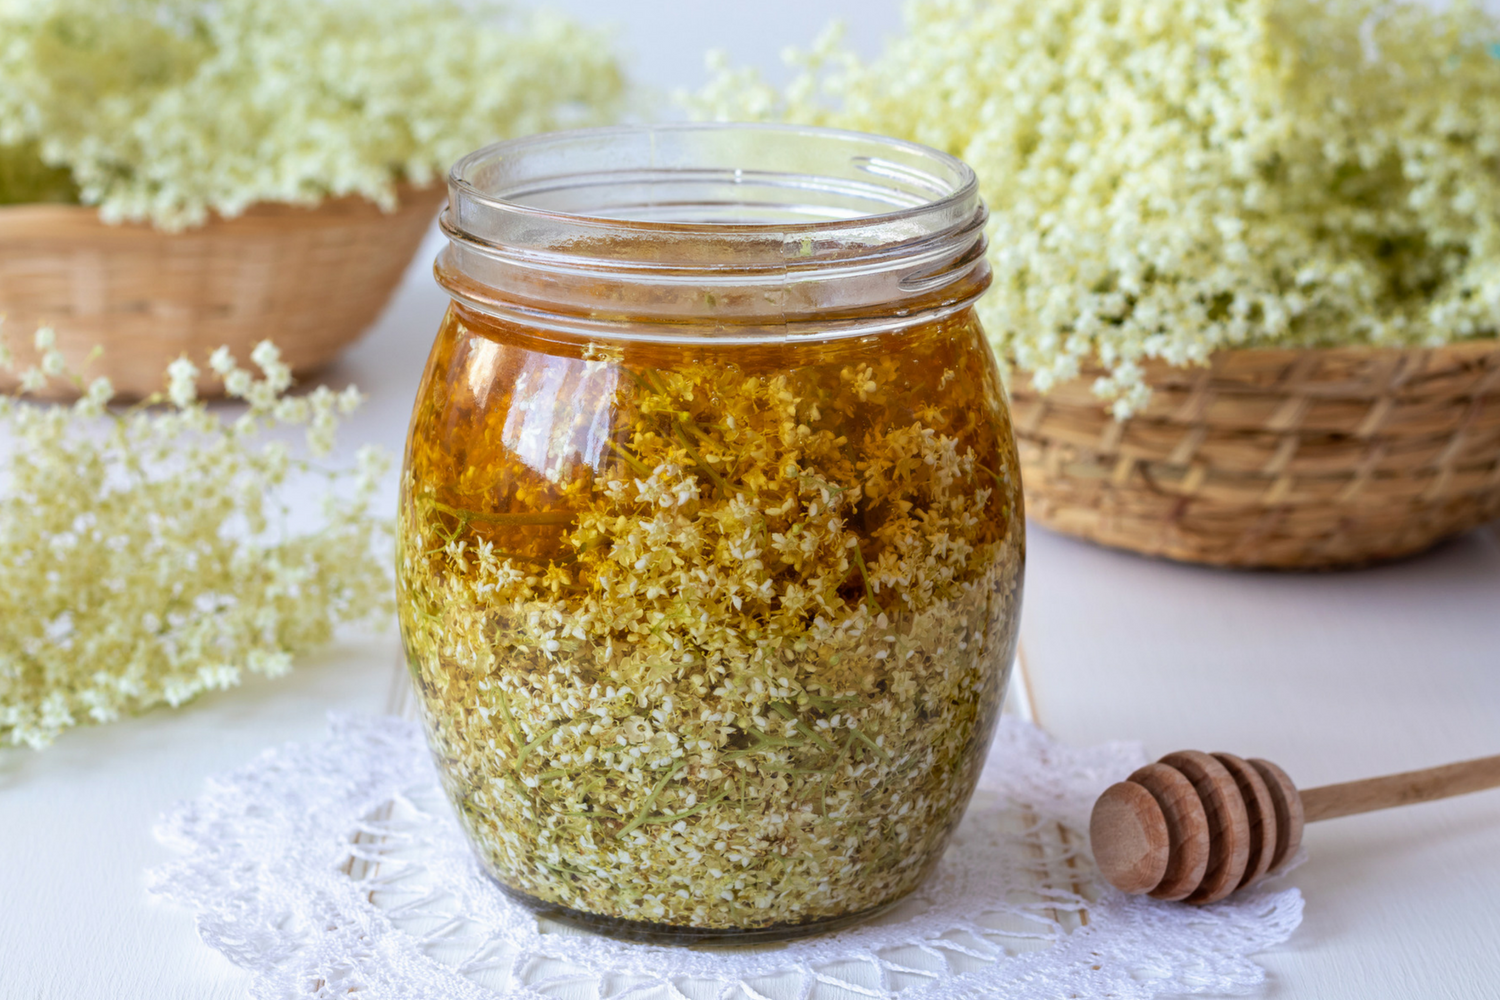 Elder flower syrup in glass jar.